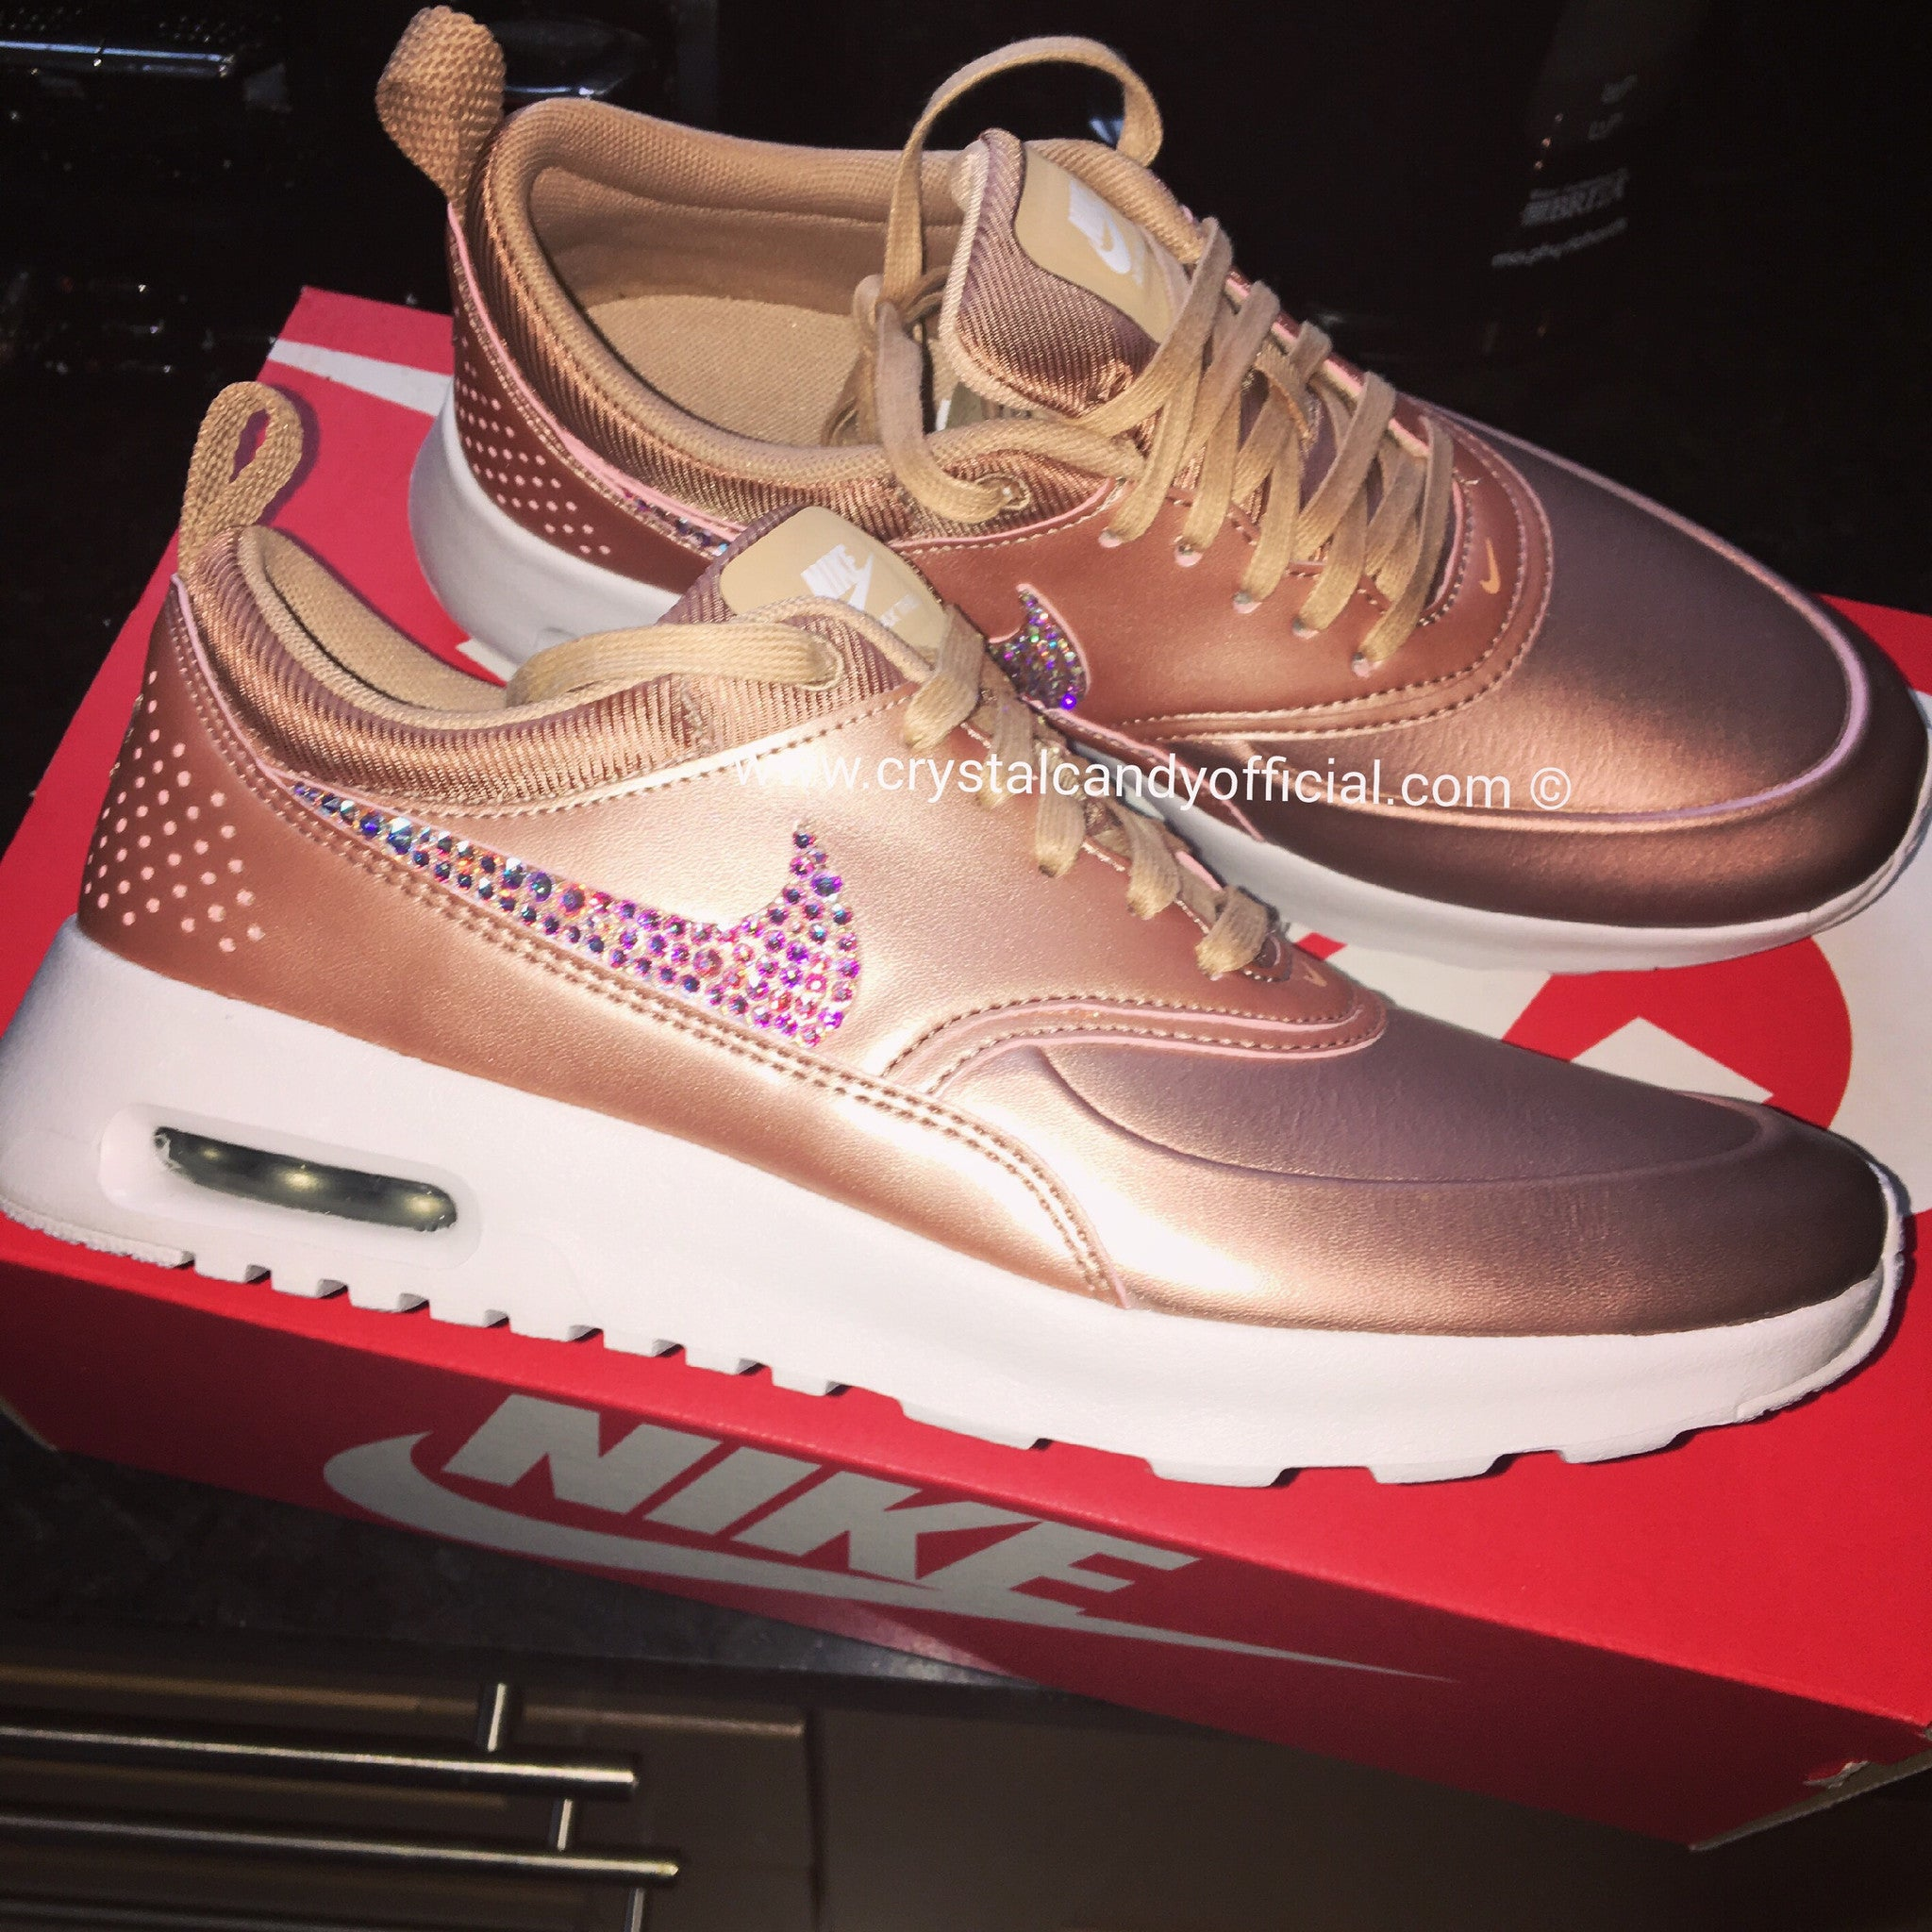 86c7b8abe63d Crystal Nike Thea in Rose Gold - Crystal Candy Limited